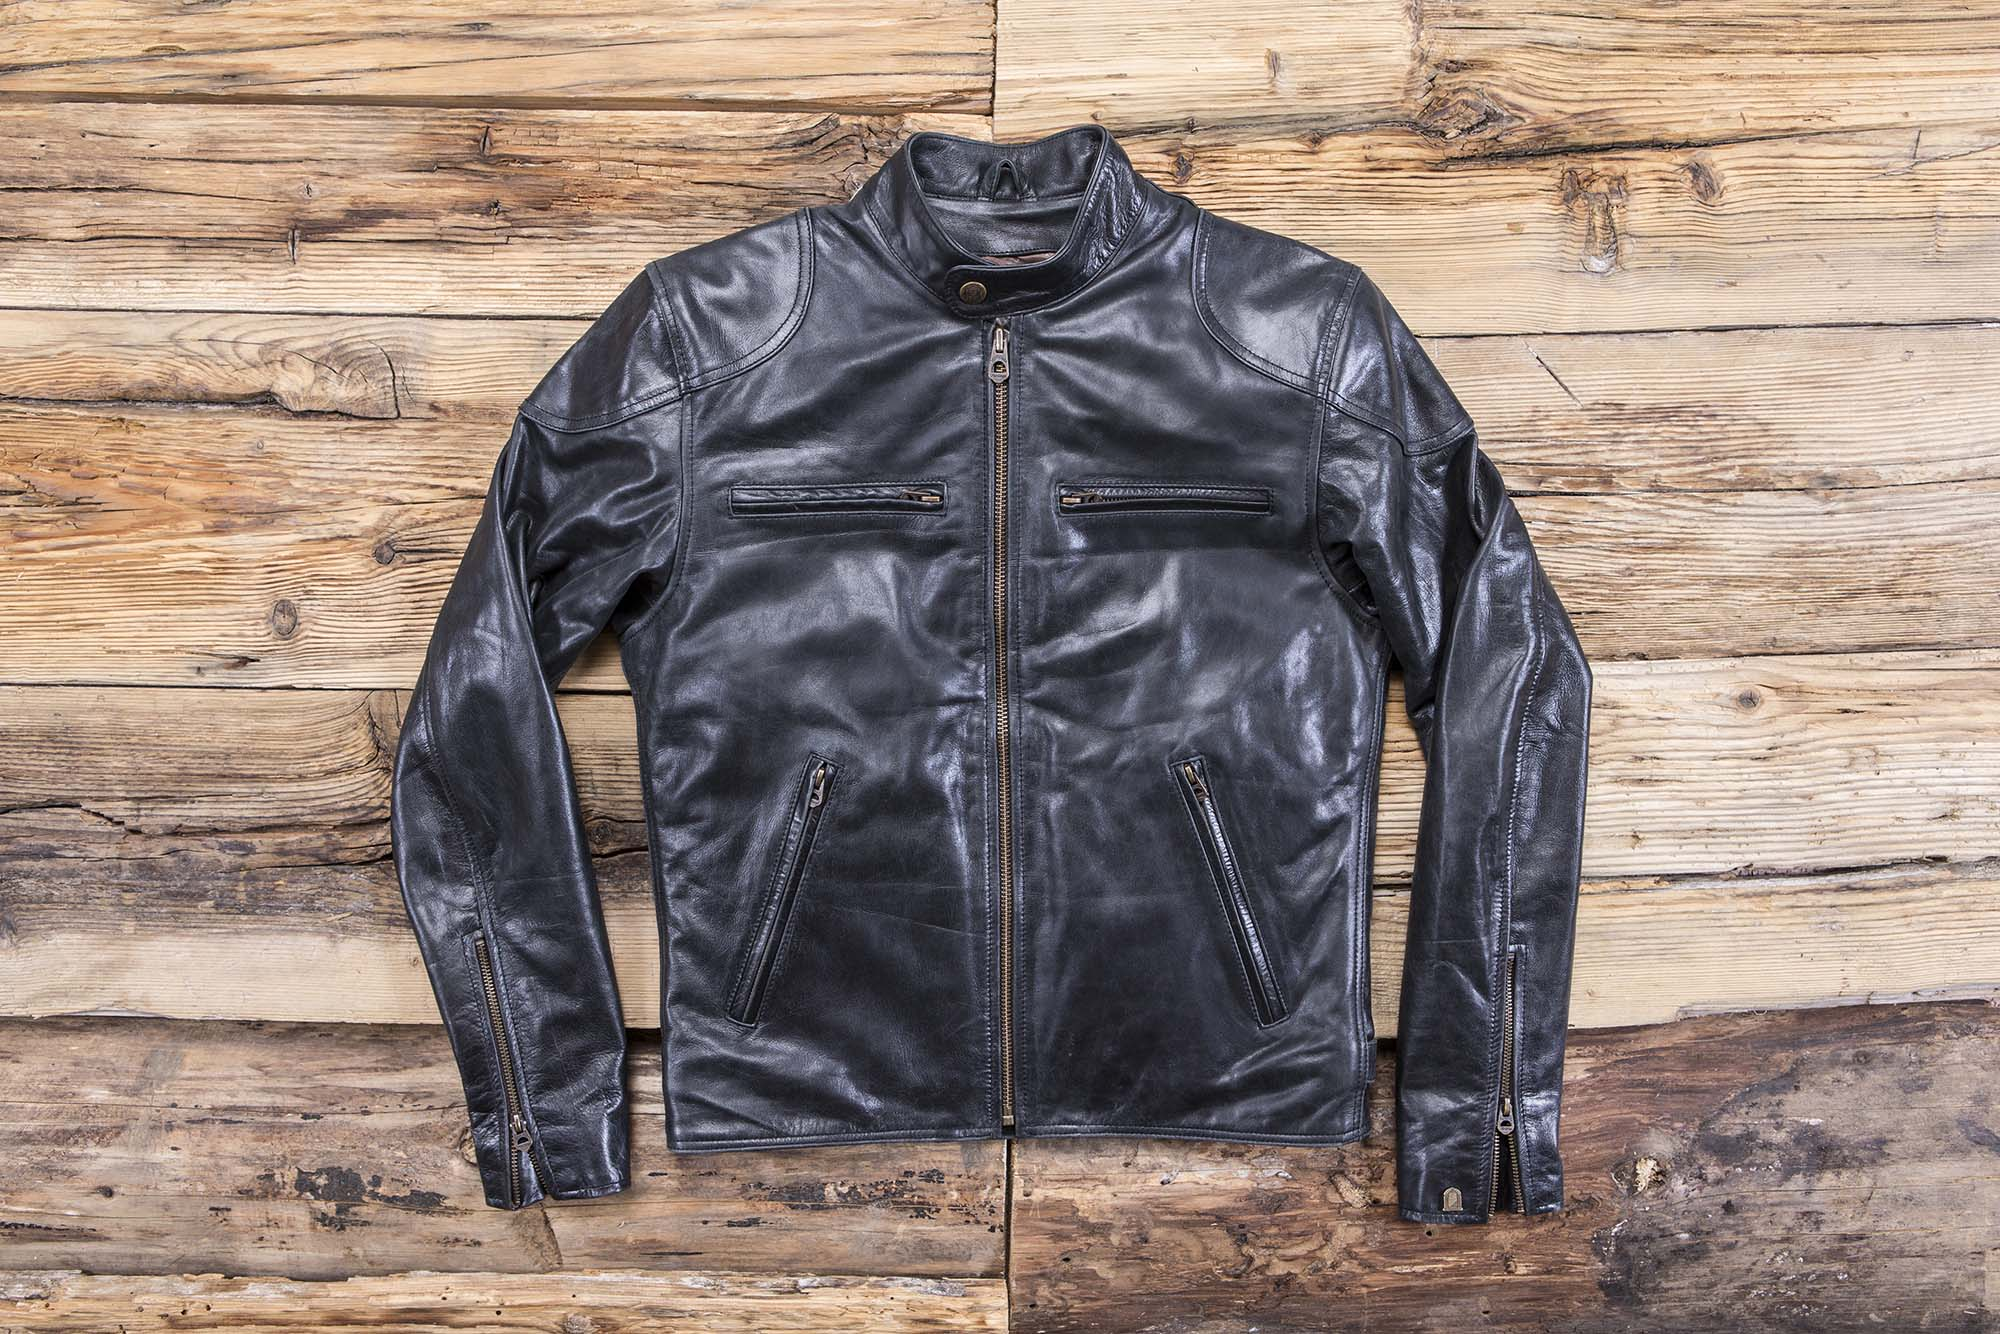 shangri-la-heritage-cafe-racer-black-leather-jacket-still-life-front